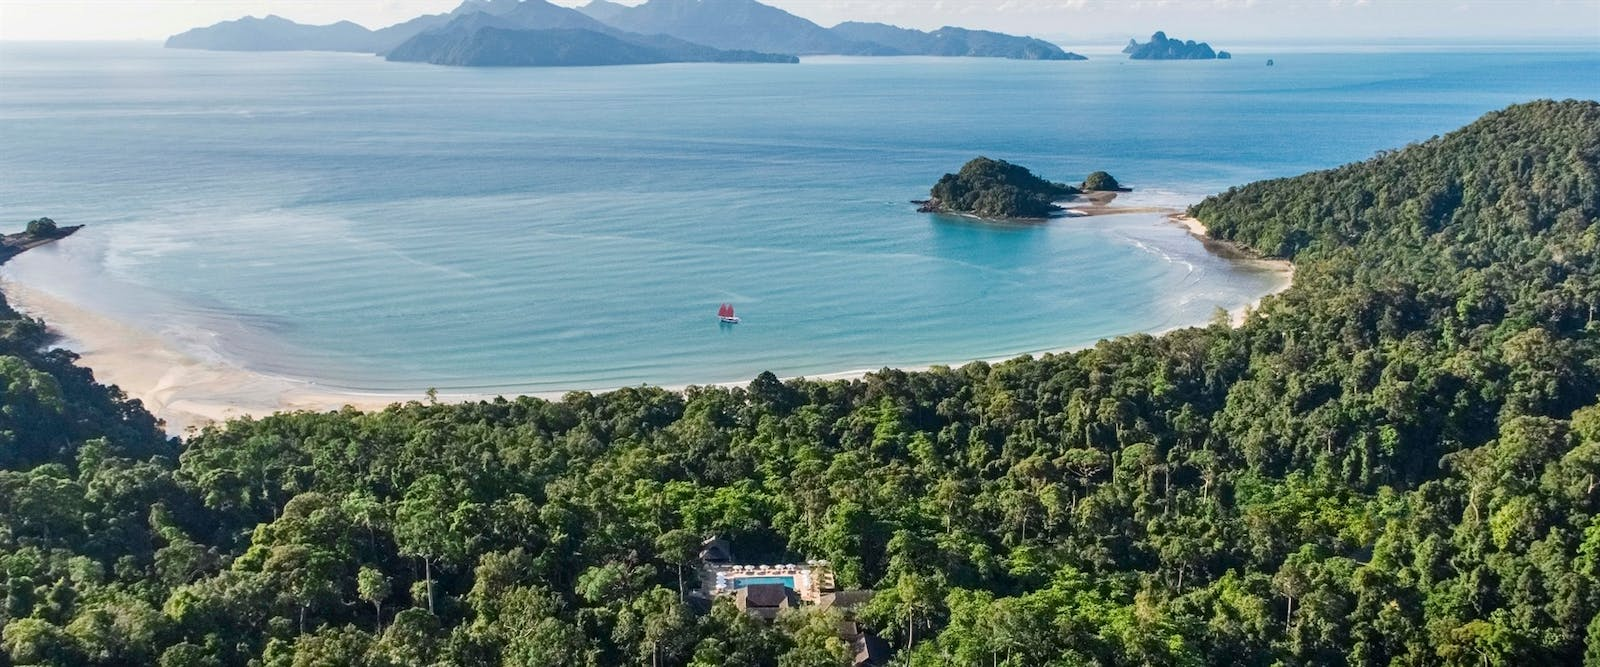 Aerial View of The Datai Langkawi, Malaysia